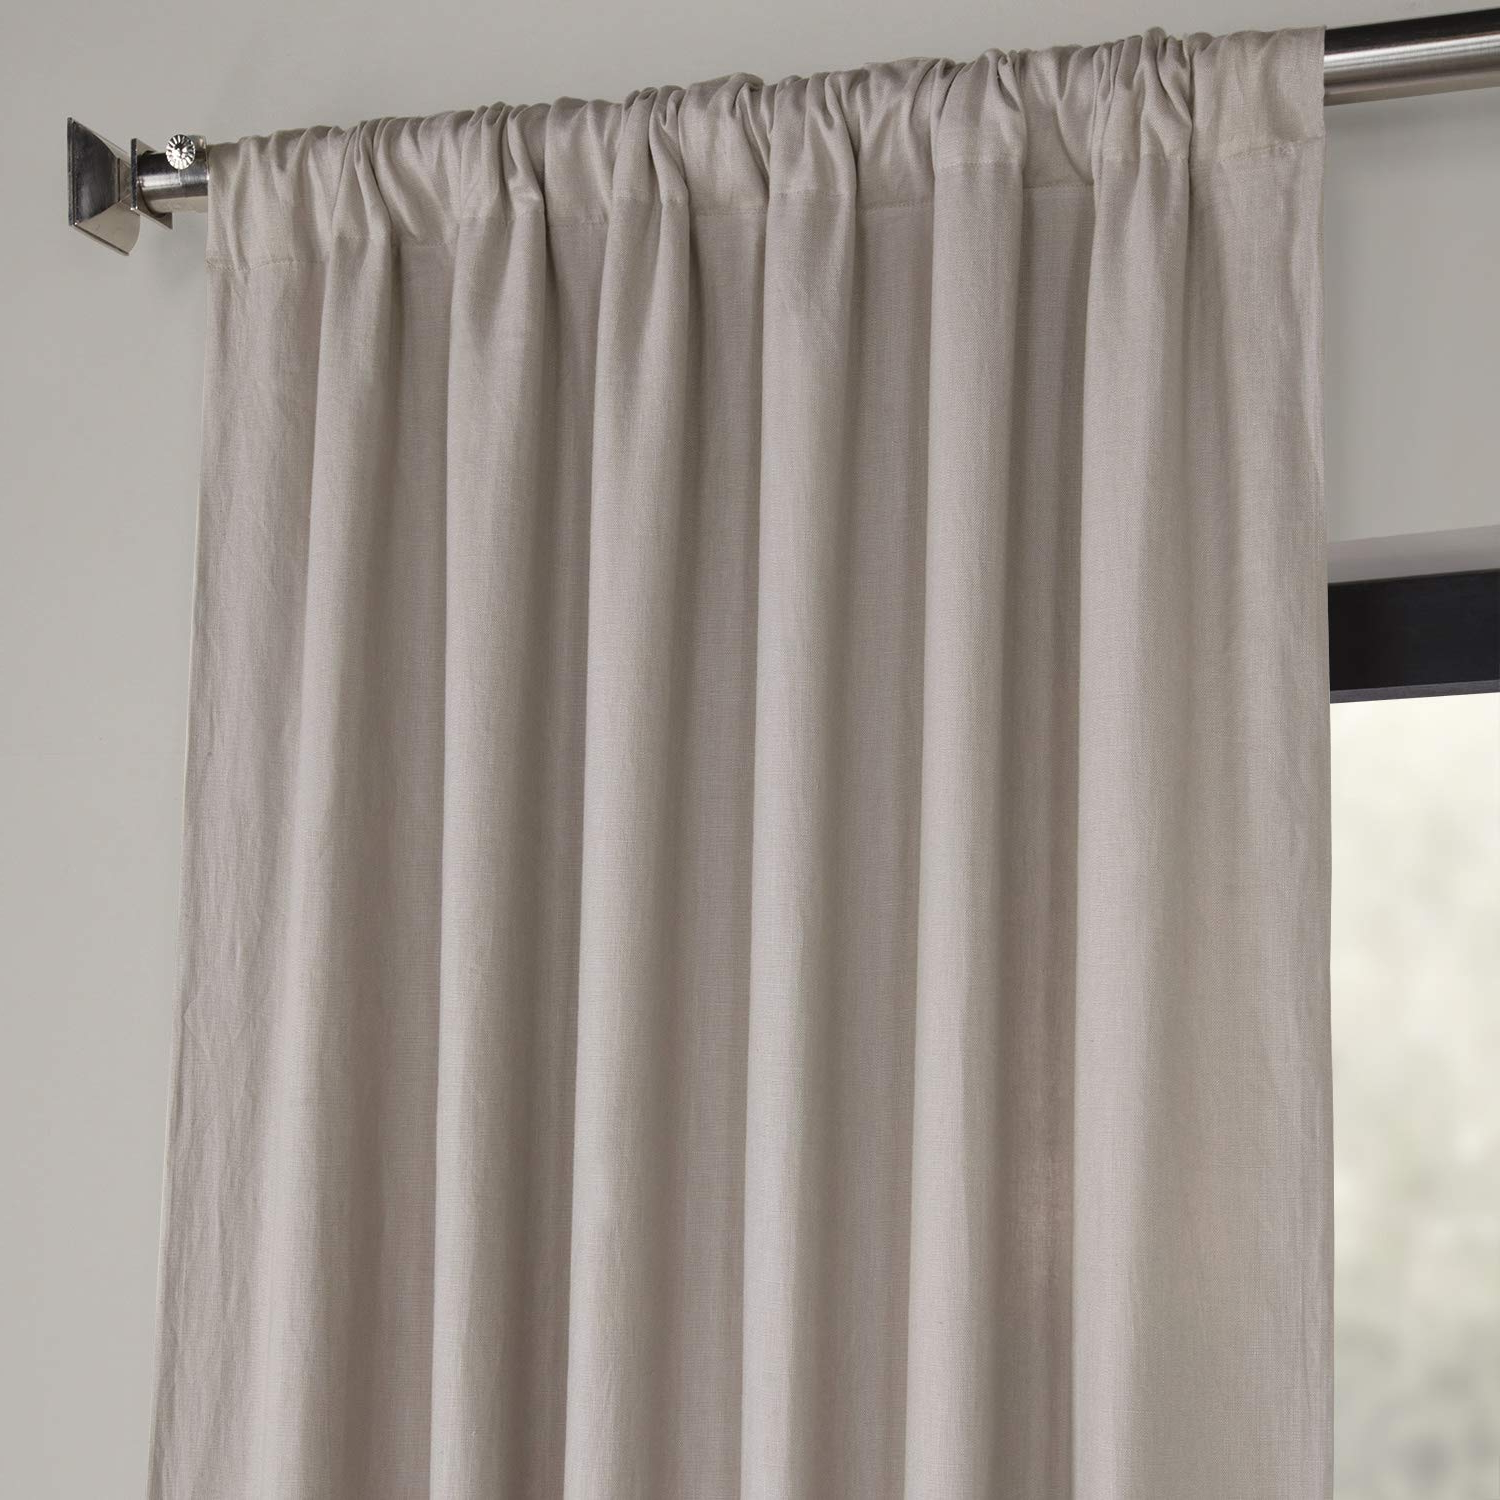 Latest Ln Xs1701 96 French Linen Curtain, Earl Grey, 50 X 96 With French Linen Lined Curtain Panels (View 5 of 20)